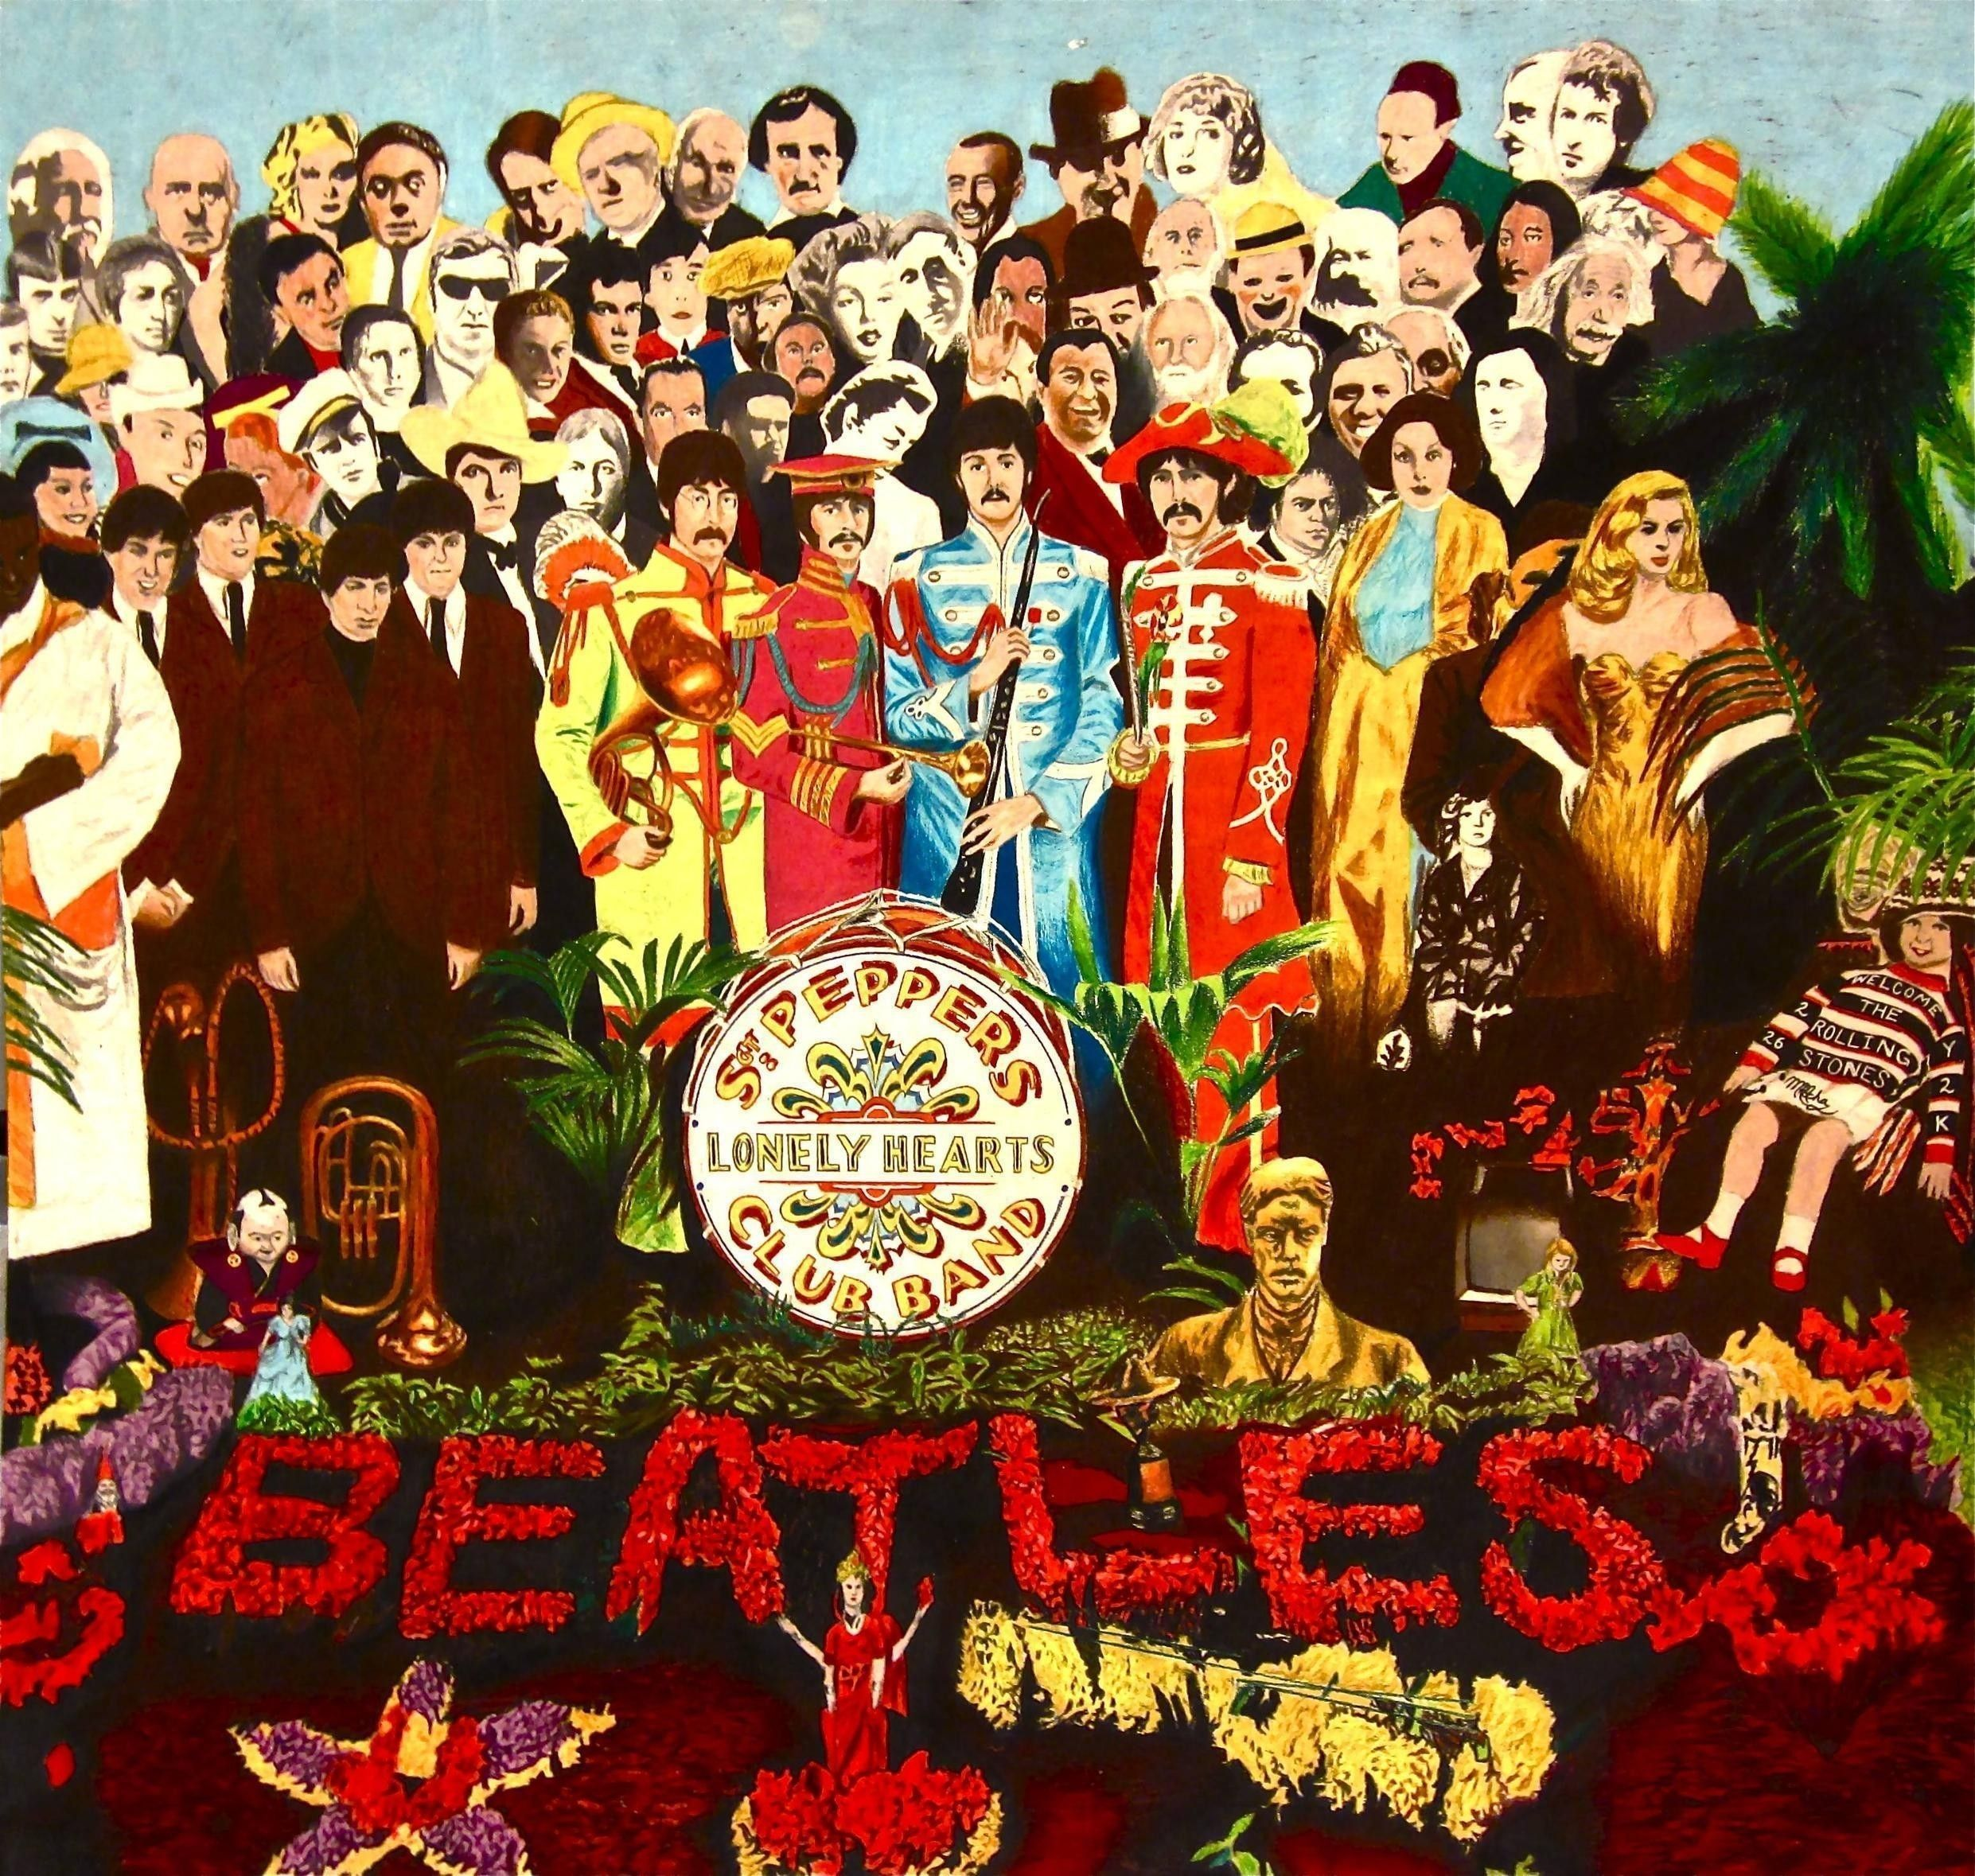 Обои The beatles, sgt. peppers lonely hearts club band, yellow submarine. Музыка foto 9